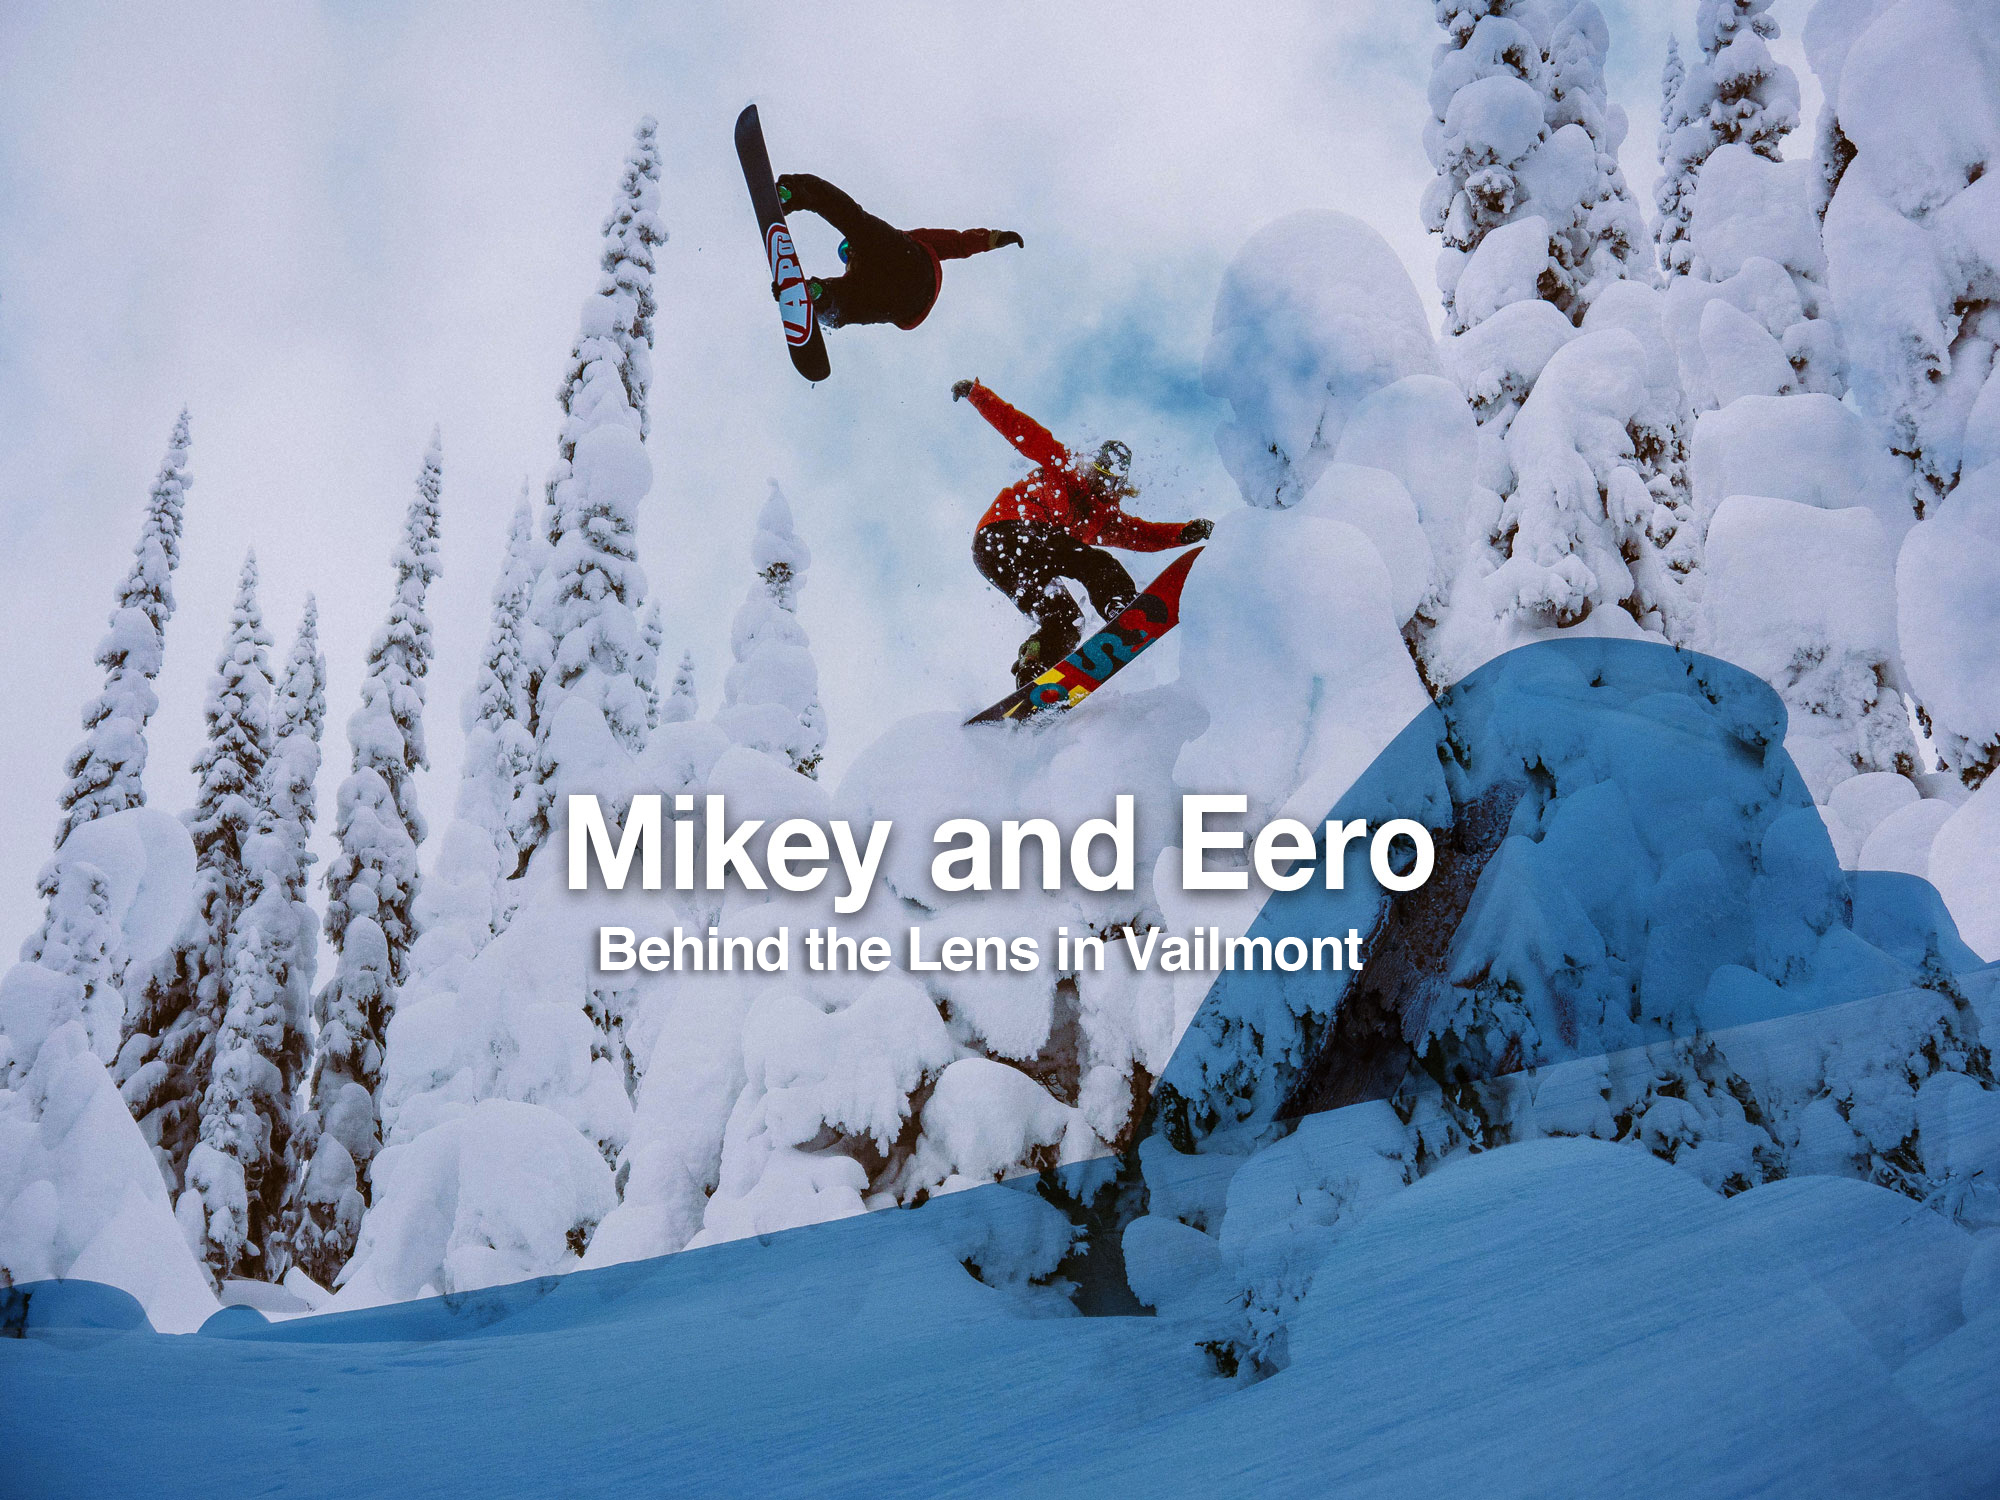 Mikey Rencz and Eero Niemela